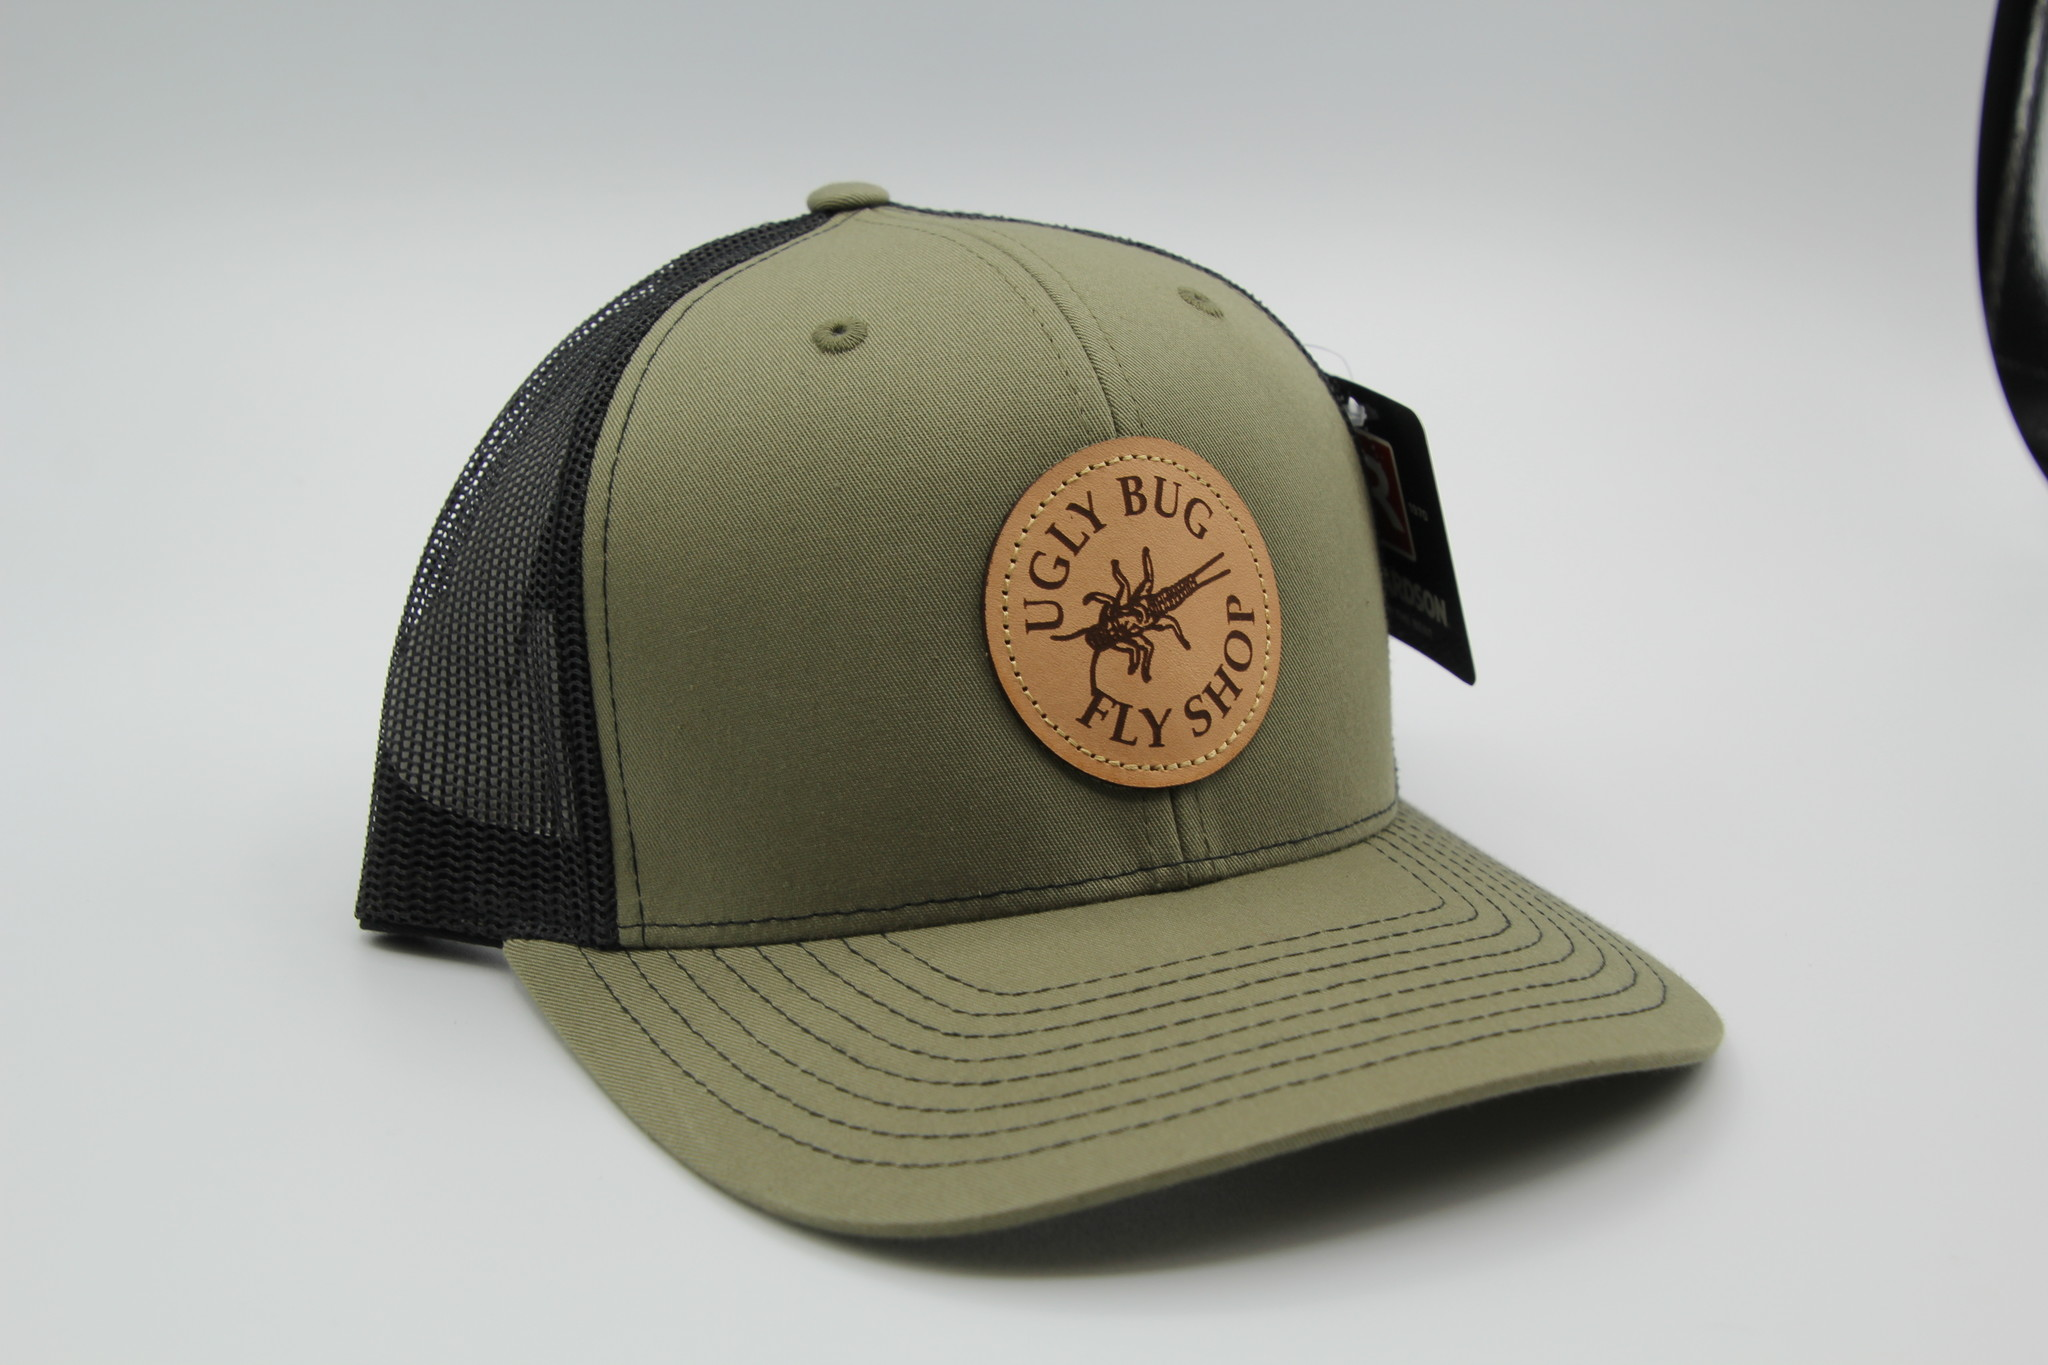 RICHARDSON RICHARDSON LEATHER UGLY BUG PATCH HAT